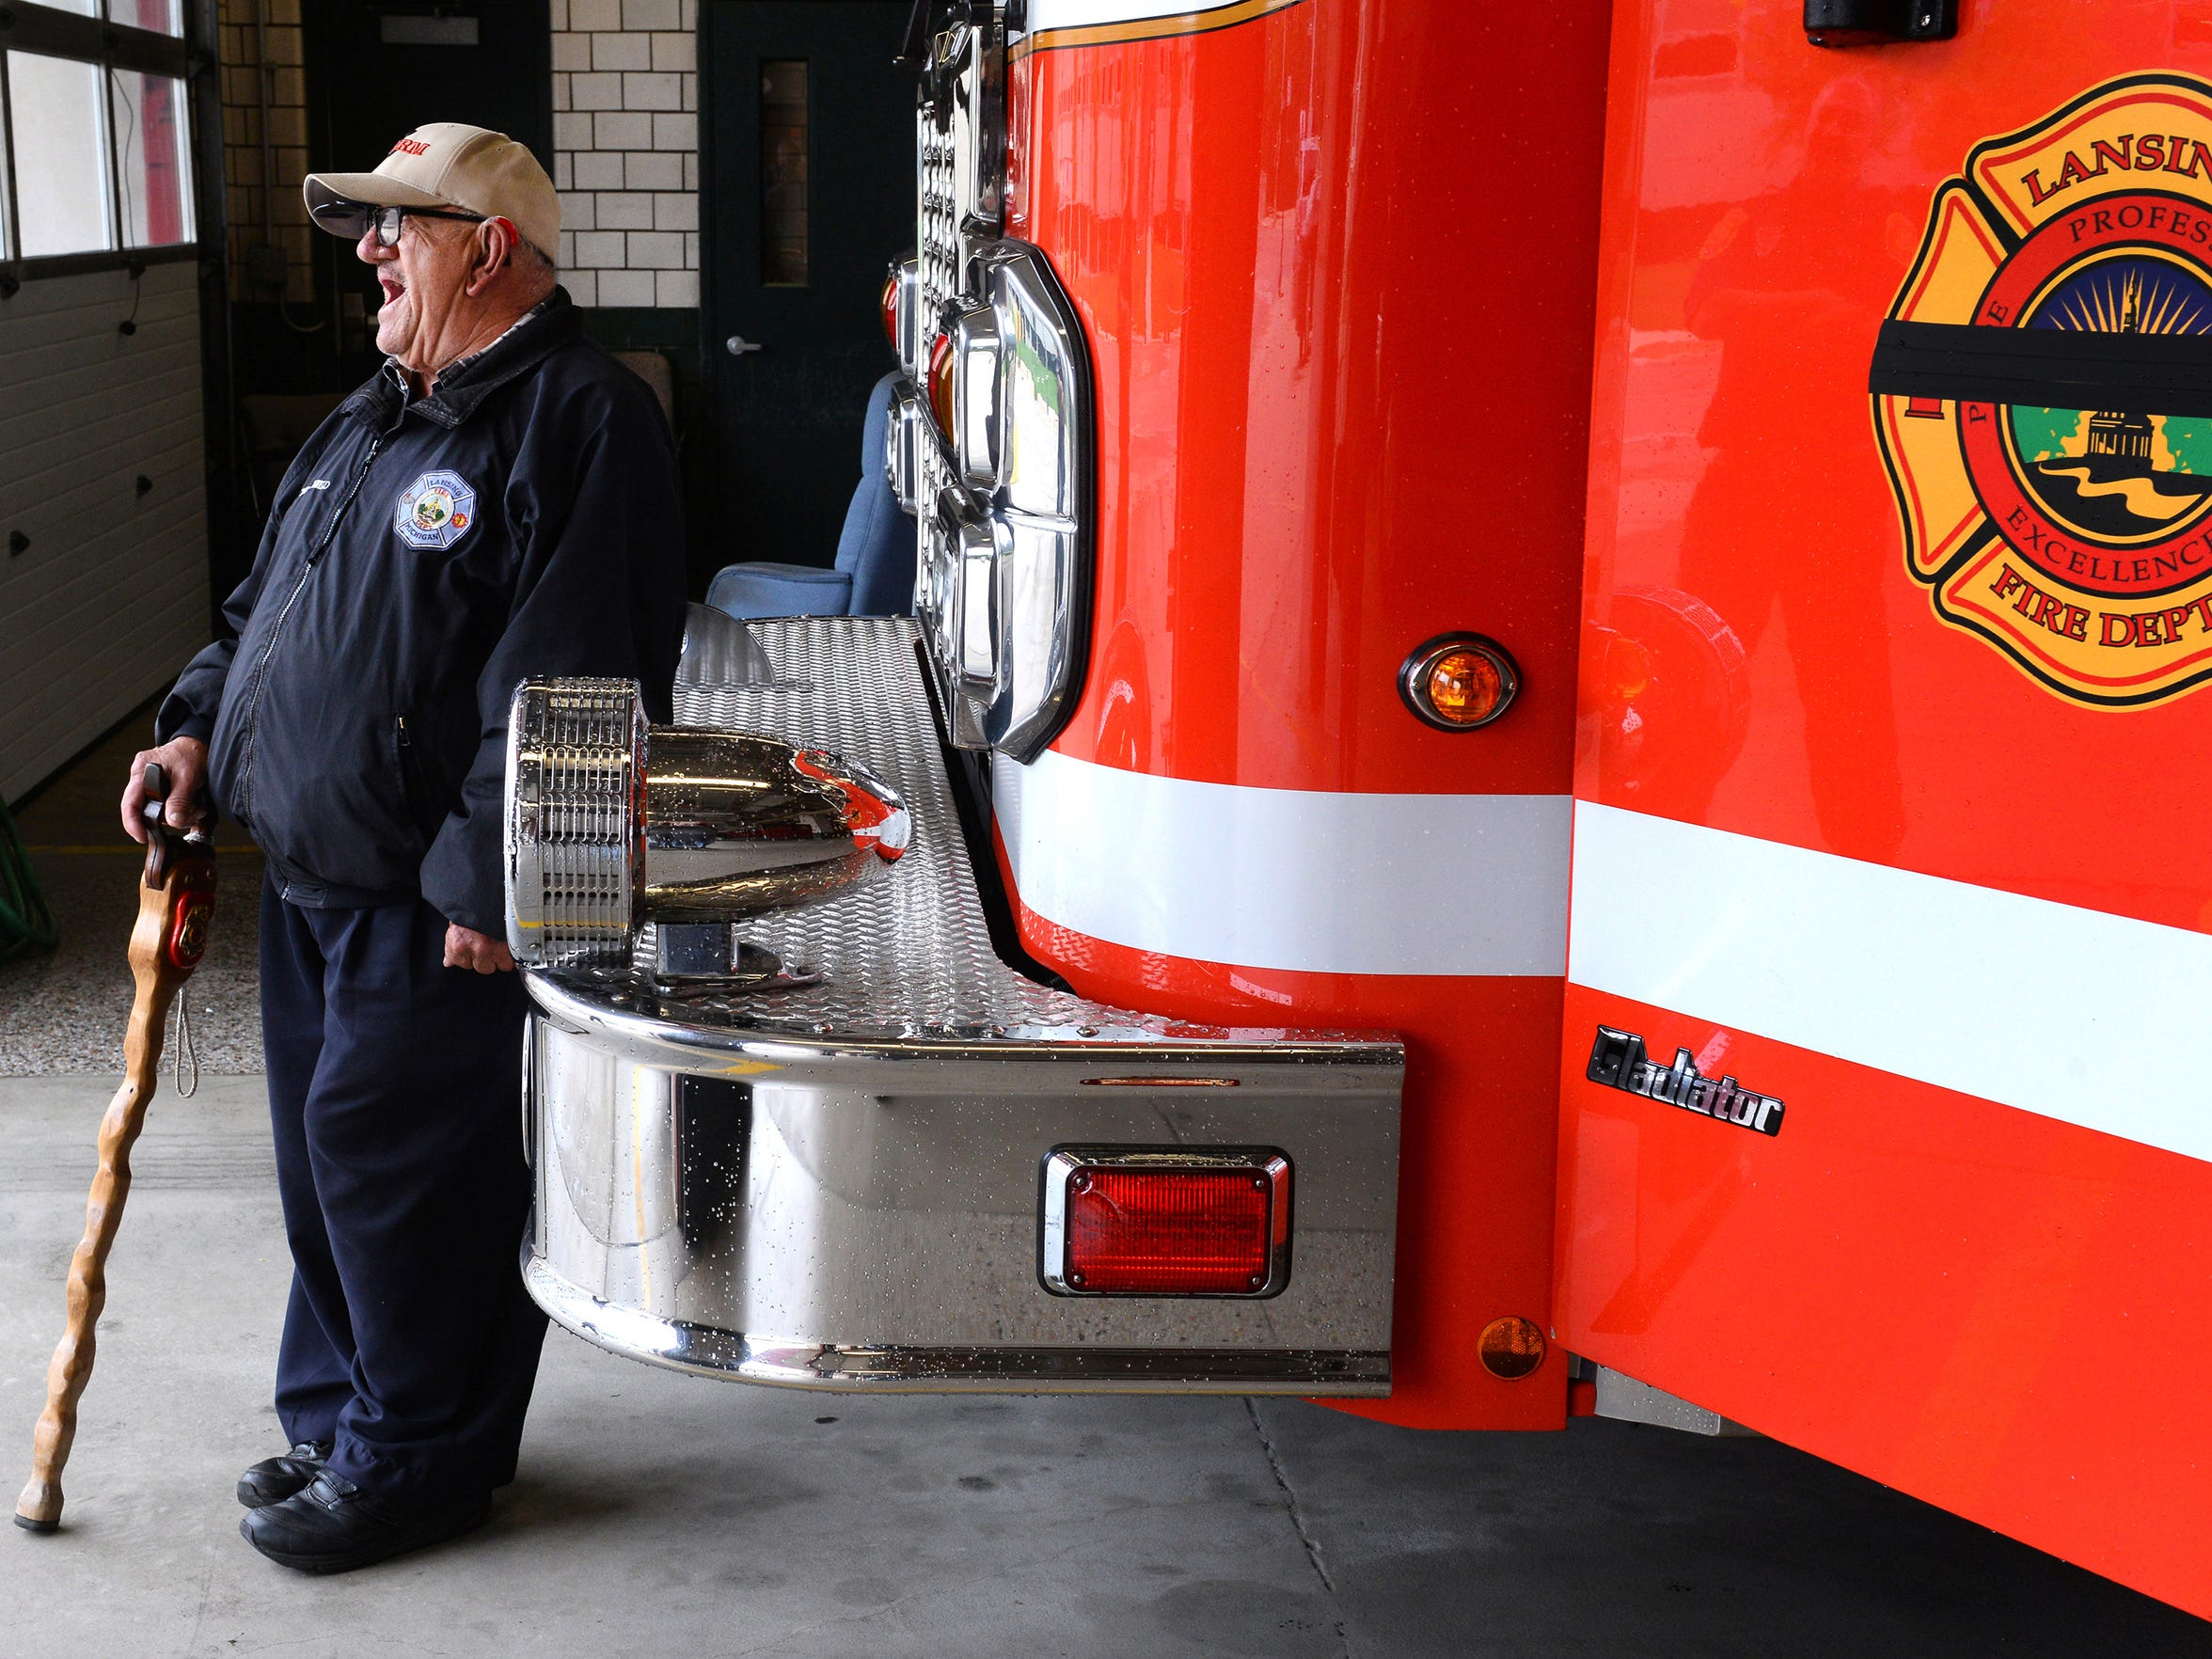 """Tony watches traffic pass on Grand Avenue.  """"We treat him like family,"""" says acting engineer Lisa McRae. """"To us, he is like family. Station life wouldn't be the same without him."""""""